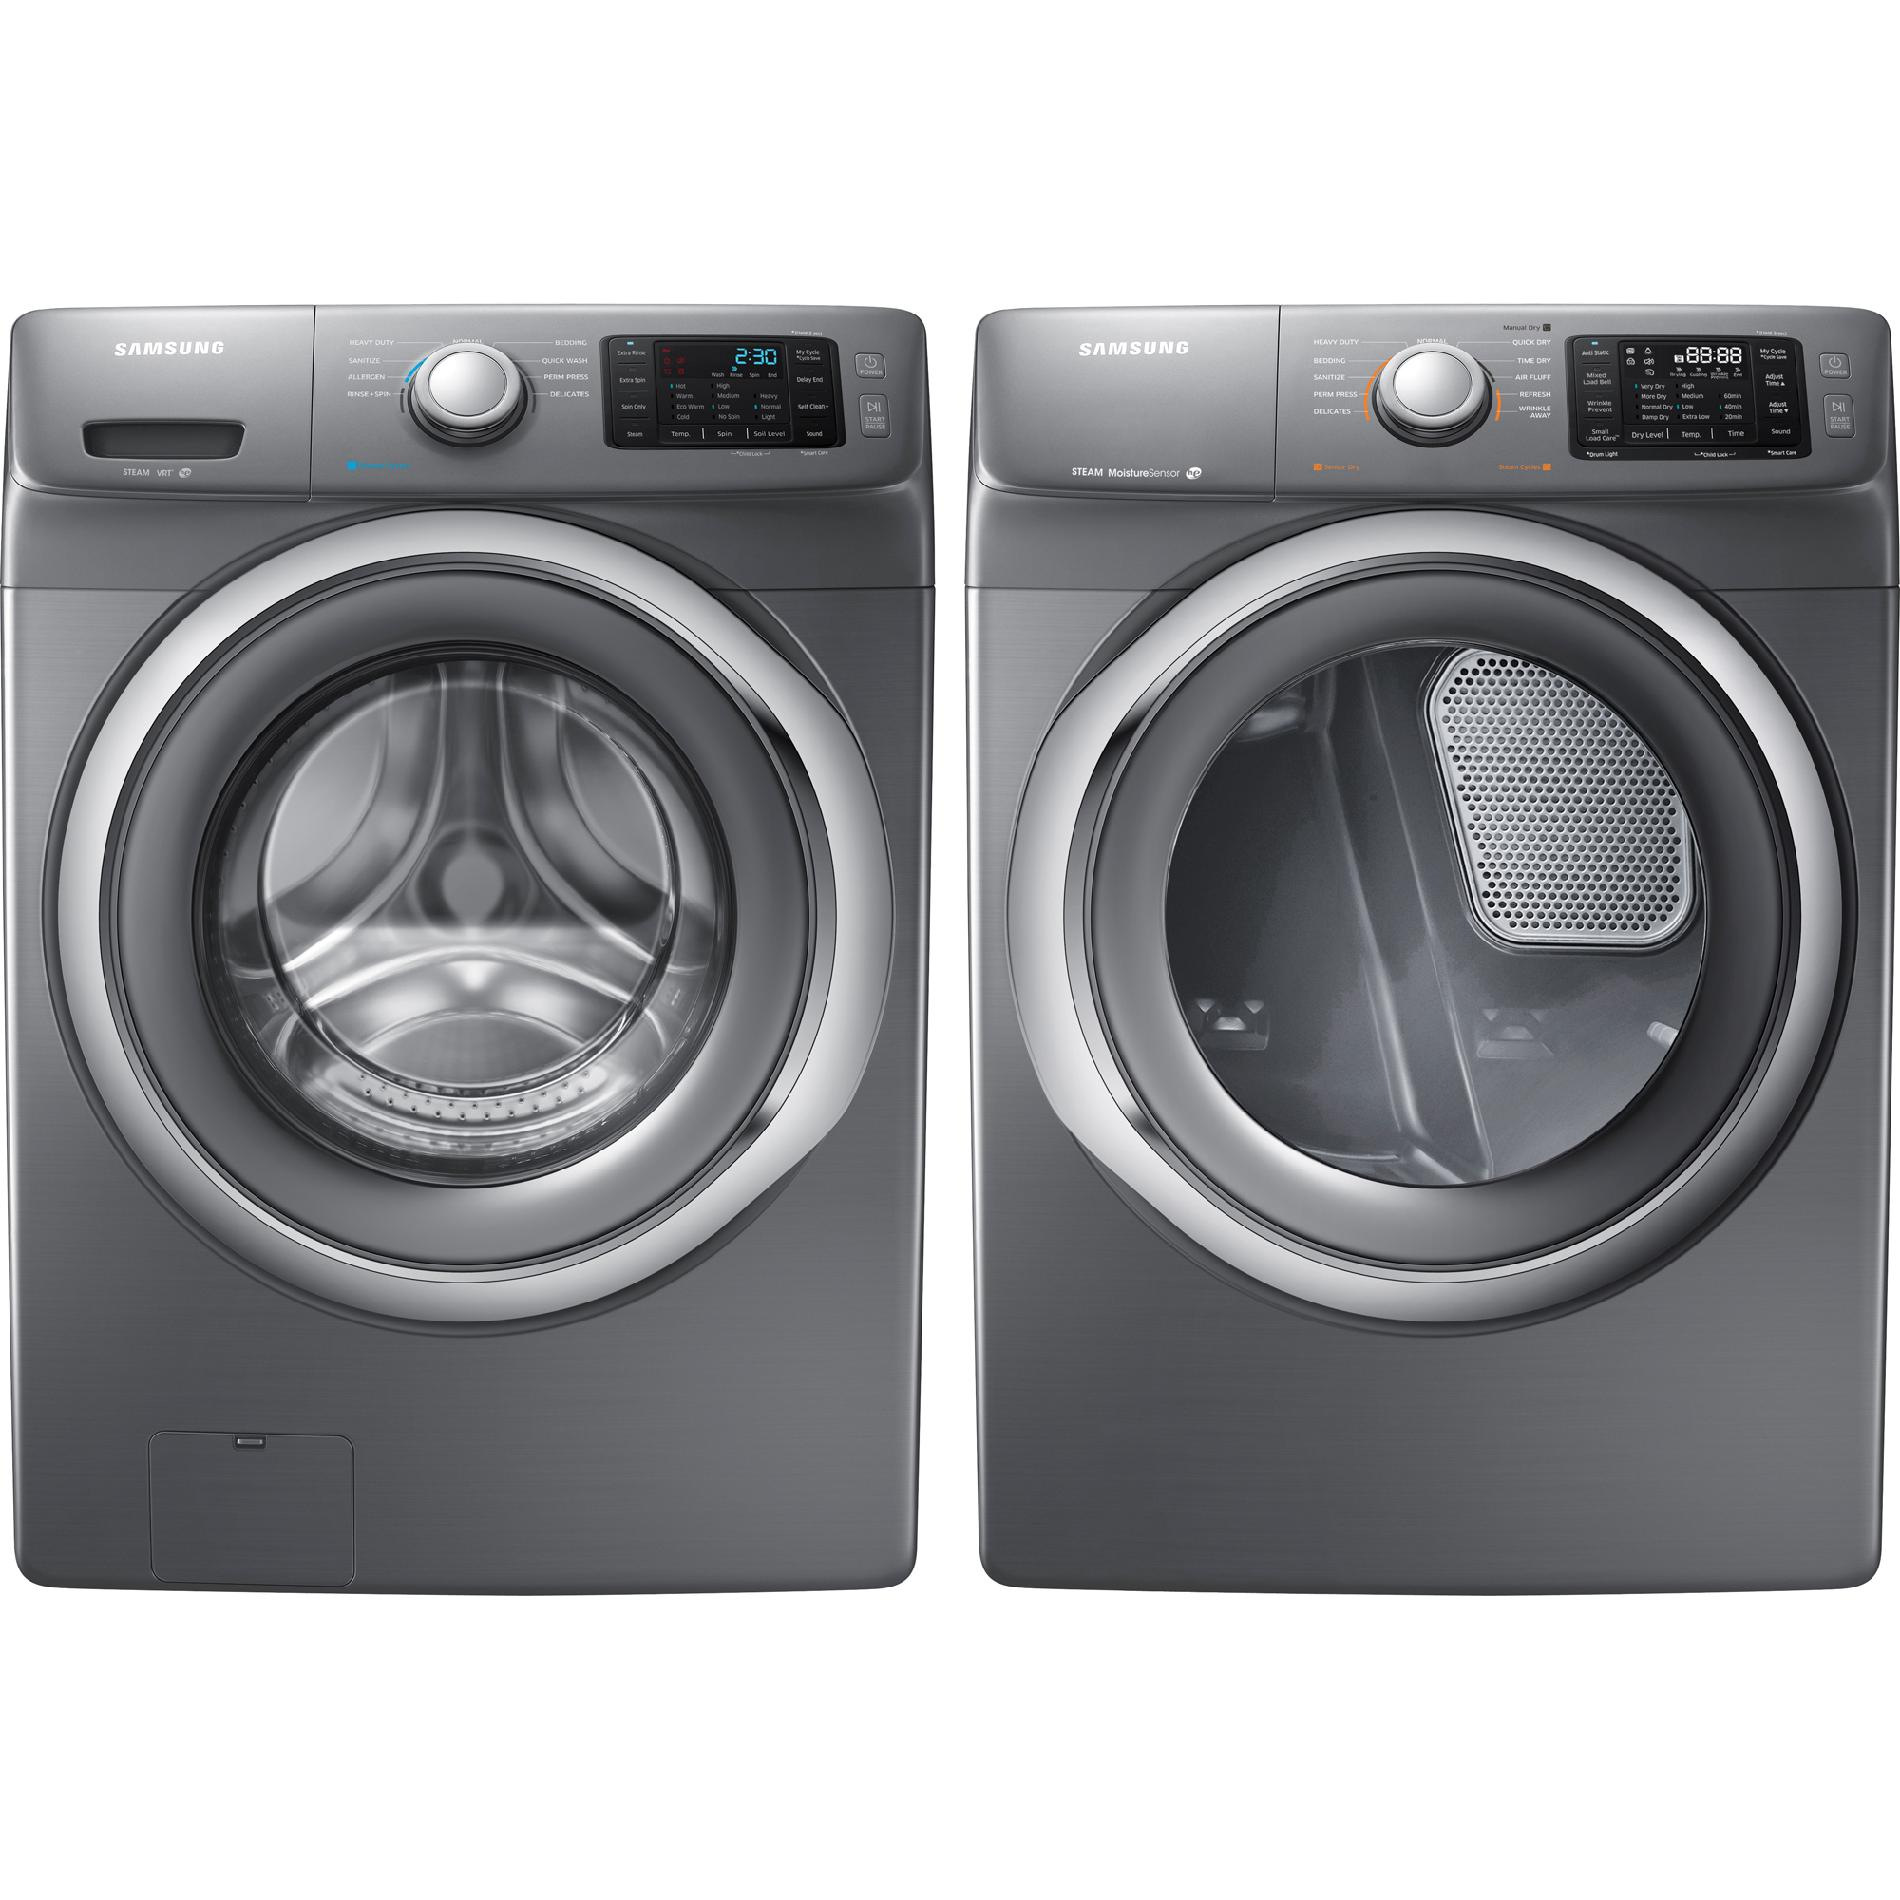 Samsung 7.5 cu. ft. Electric Dryer - Stainless Platinum